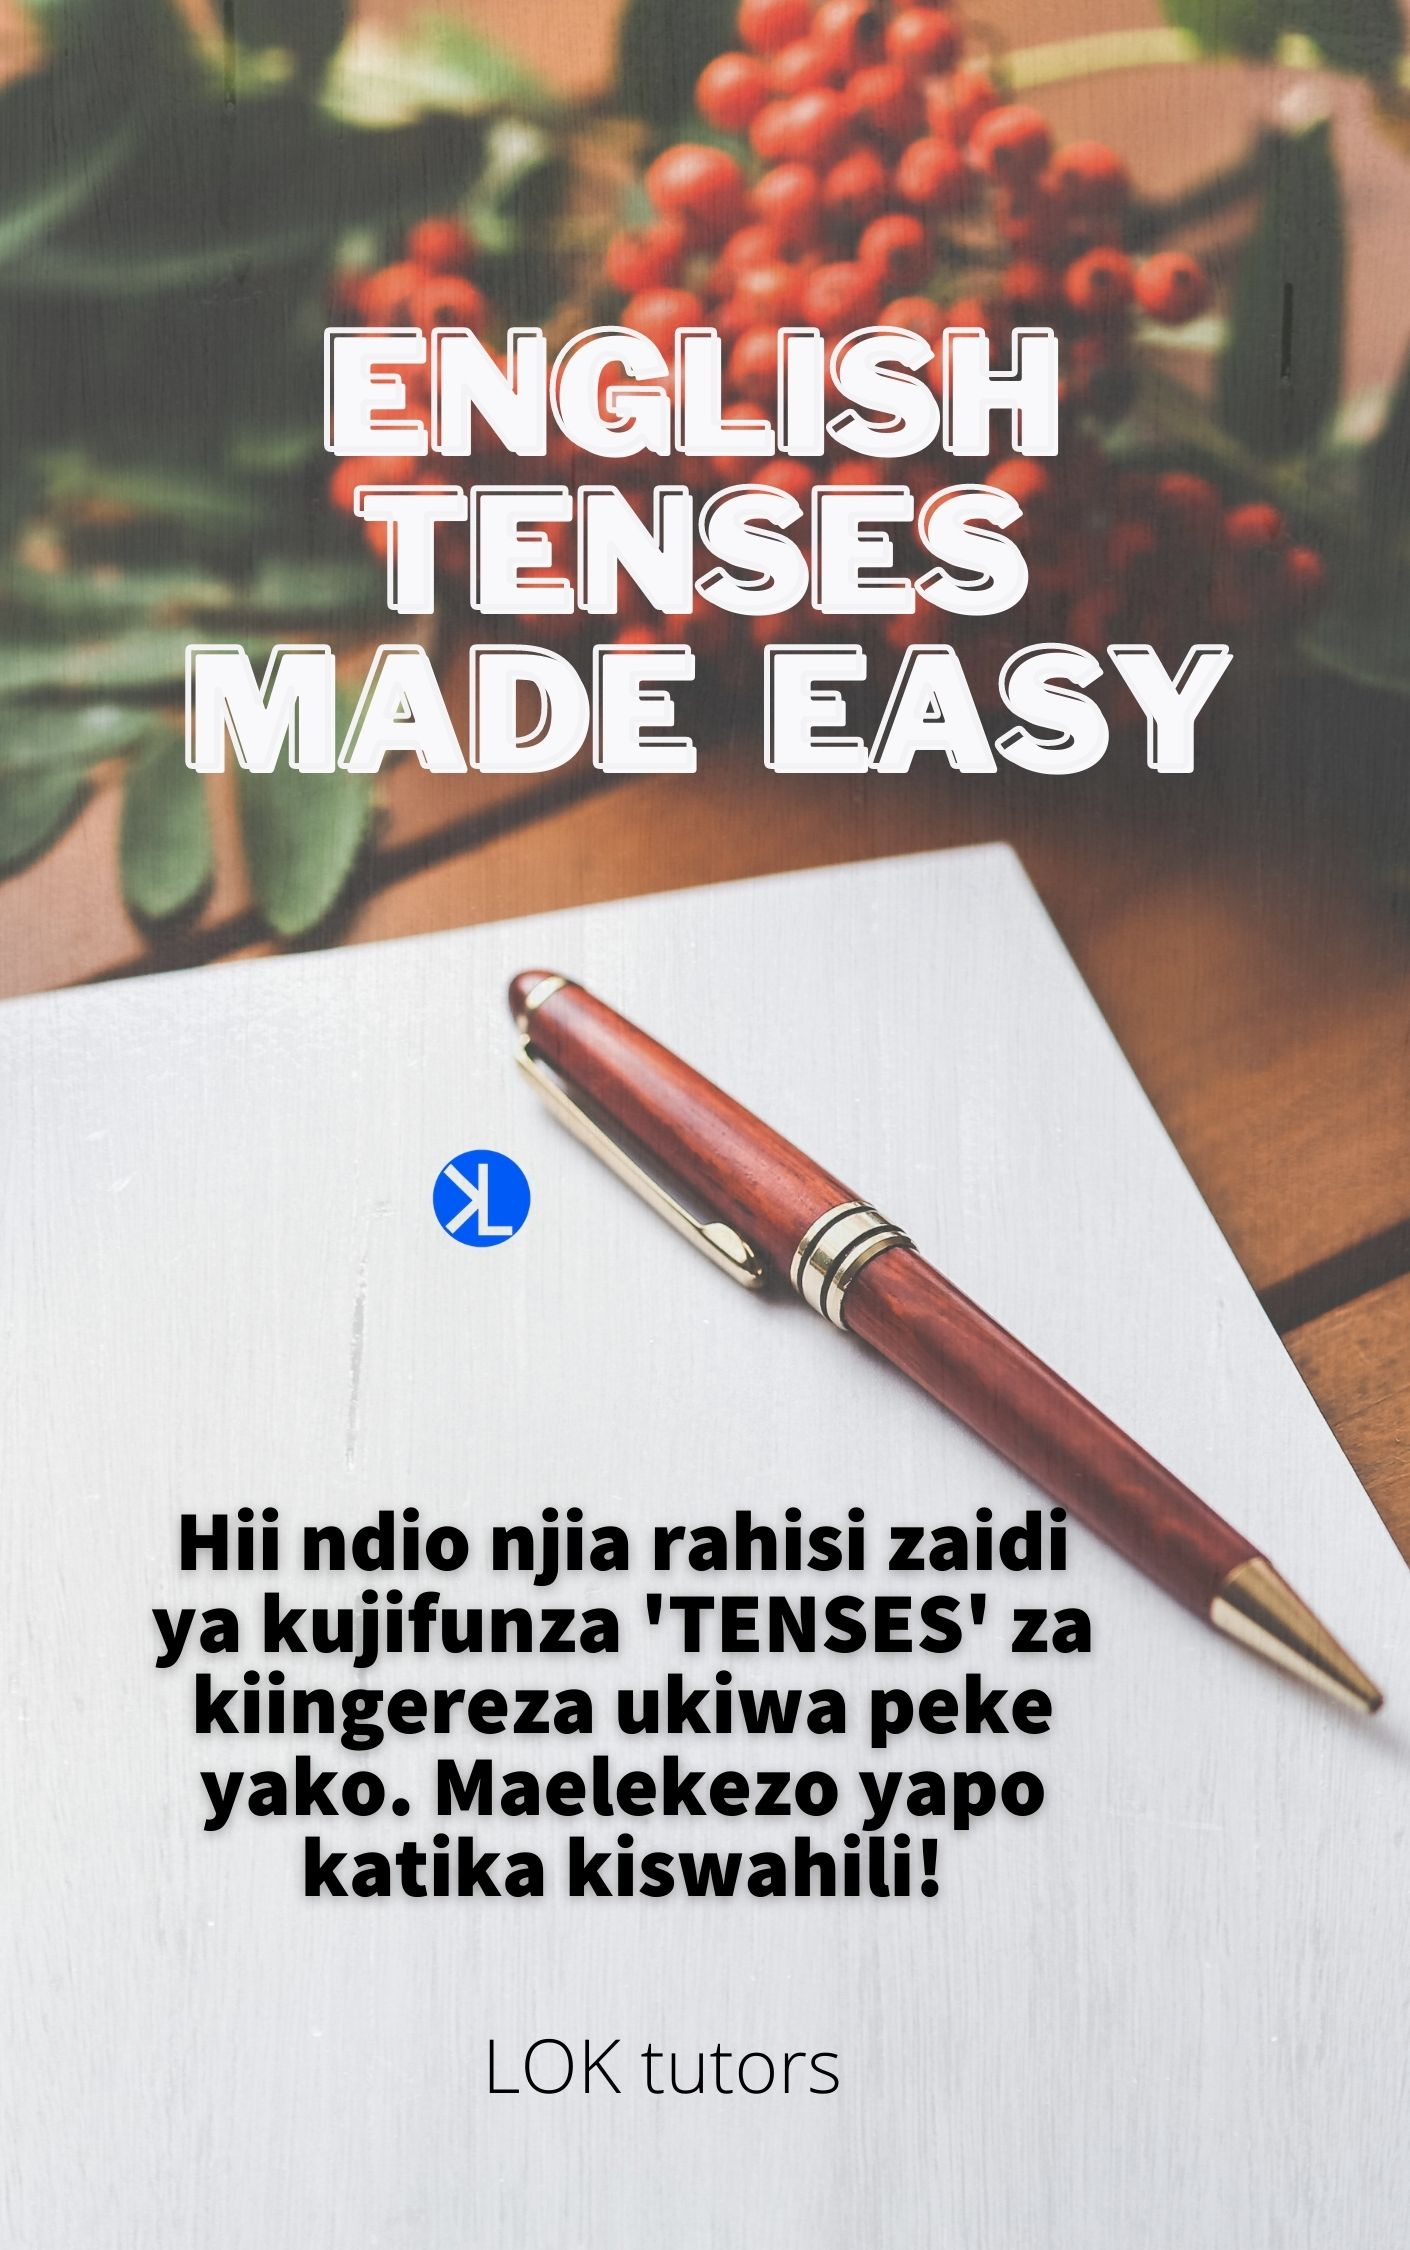 ENGLISH TENSES MADE EASY